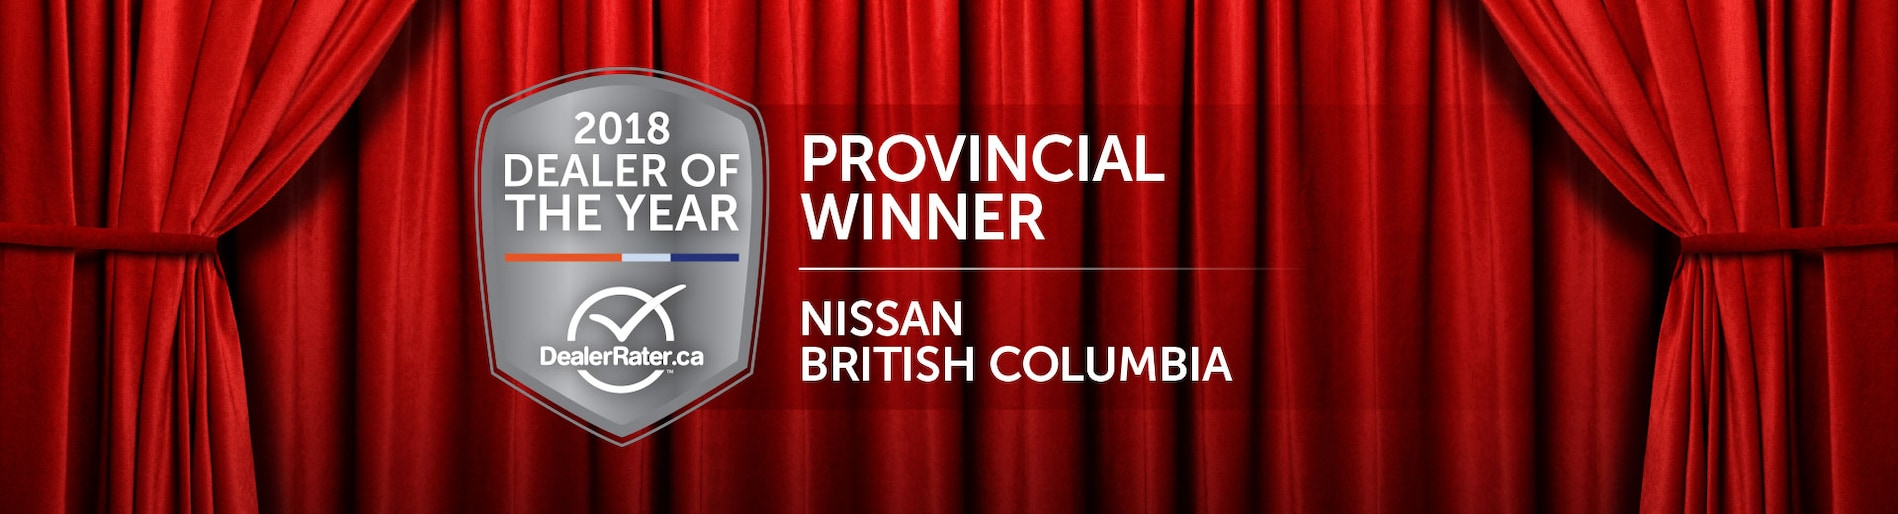 Nissan Prince George BC | Cars, Trucks, and SUVs For Sale at